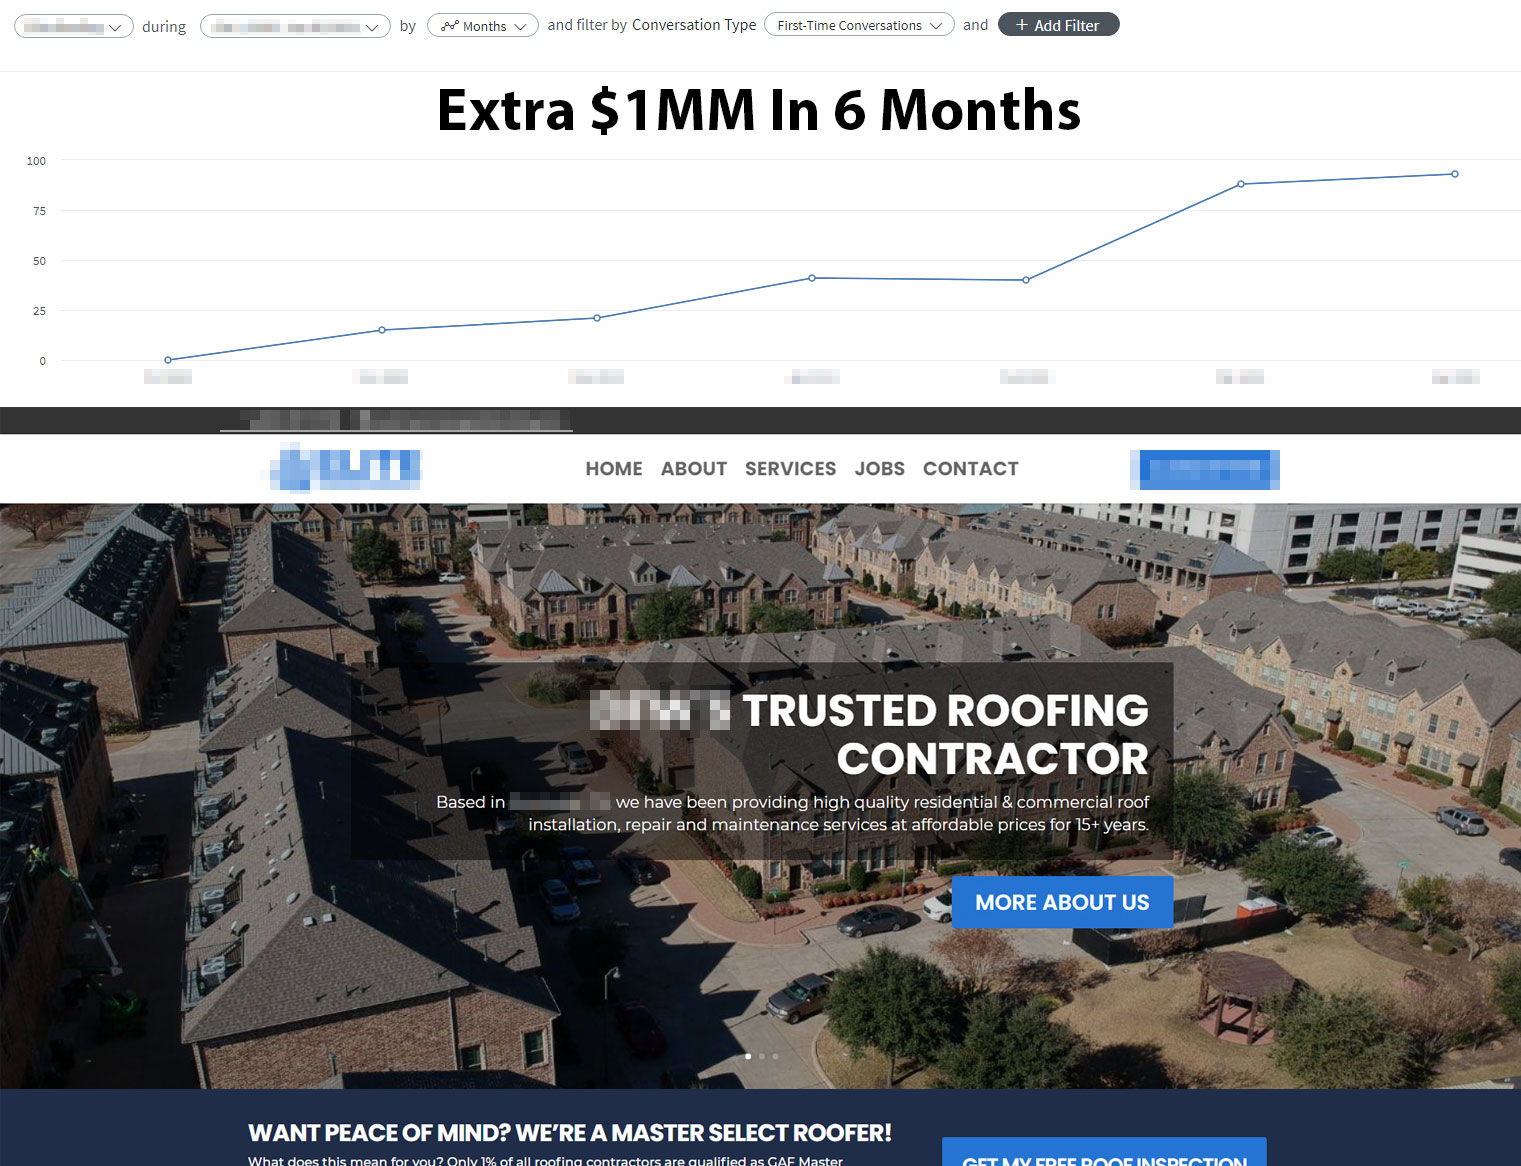 online marketing residential commercial roofing contractor digital marketing services best companies near me innovative marketing